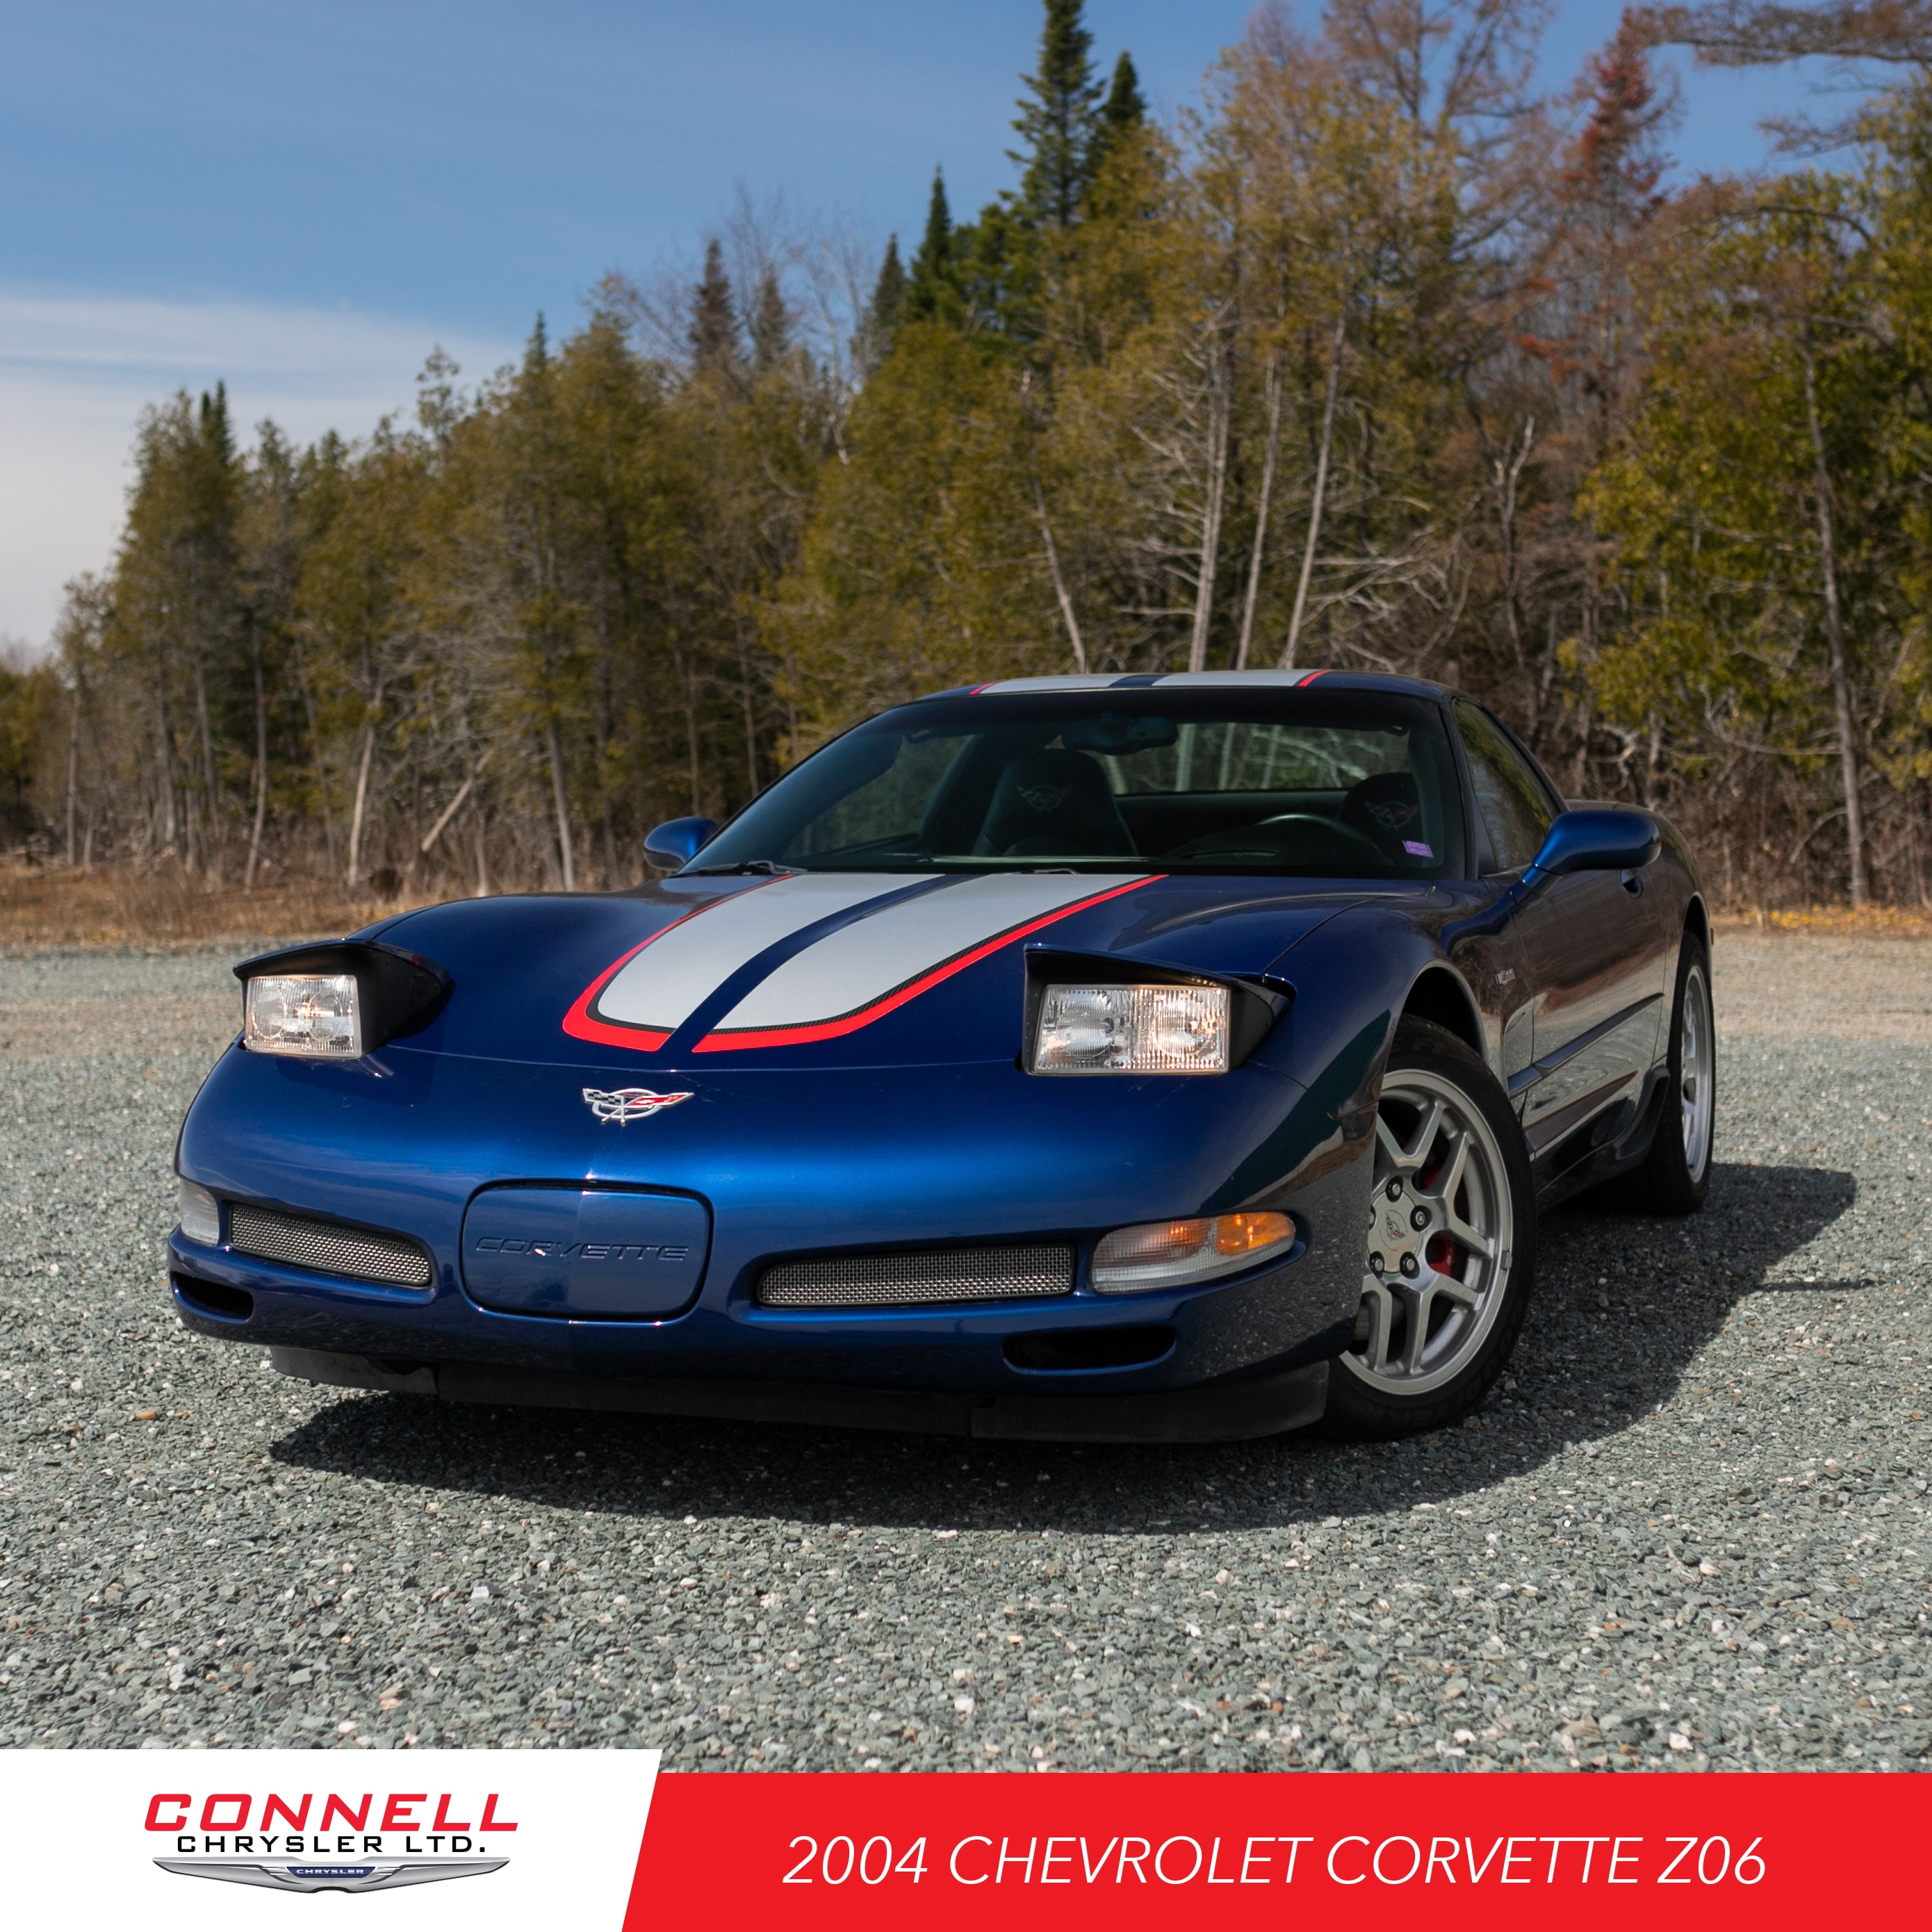 2004 Chevrolet Corvette Z06 Hardtop Coupe